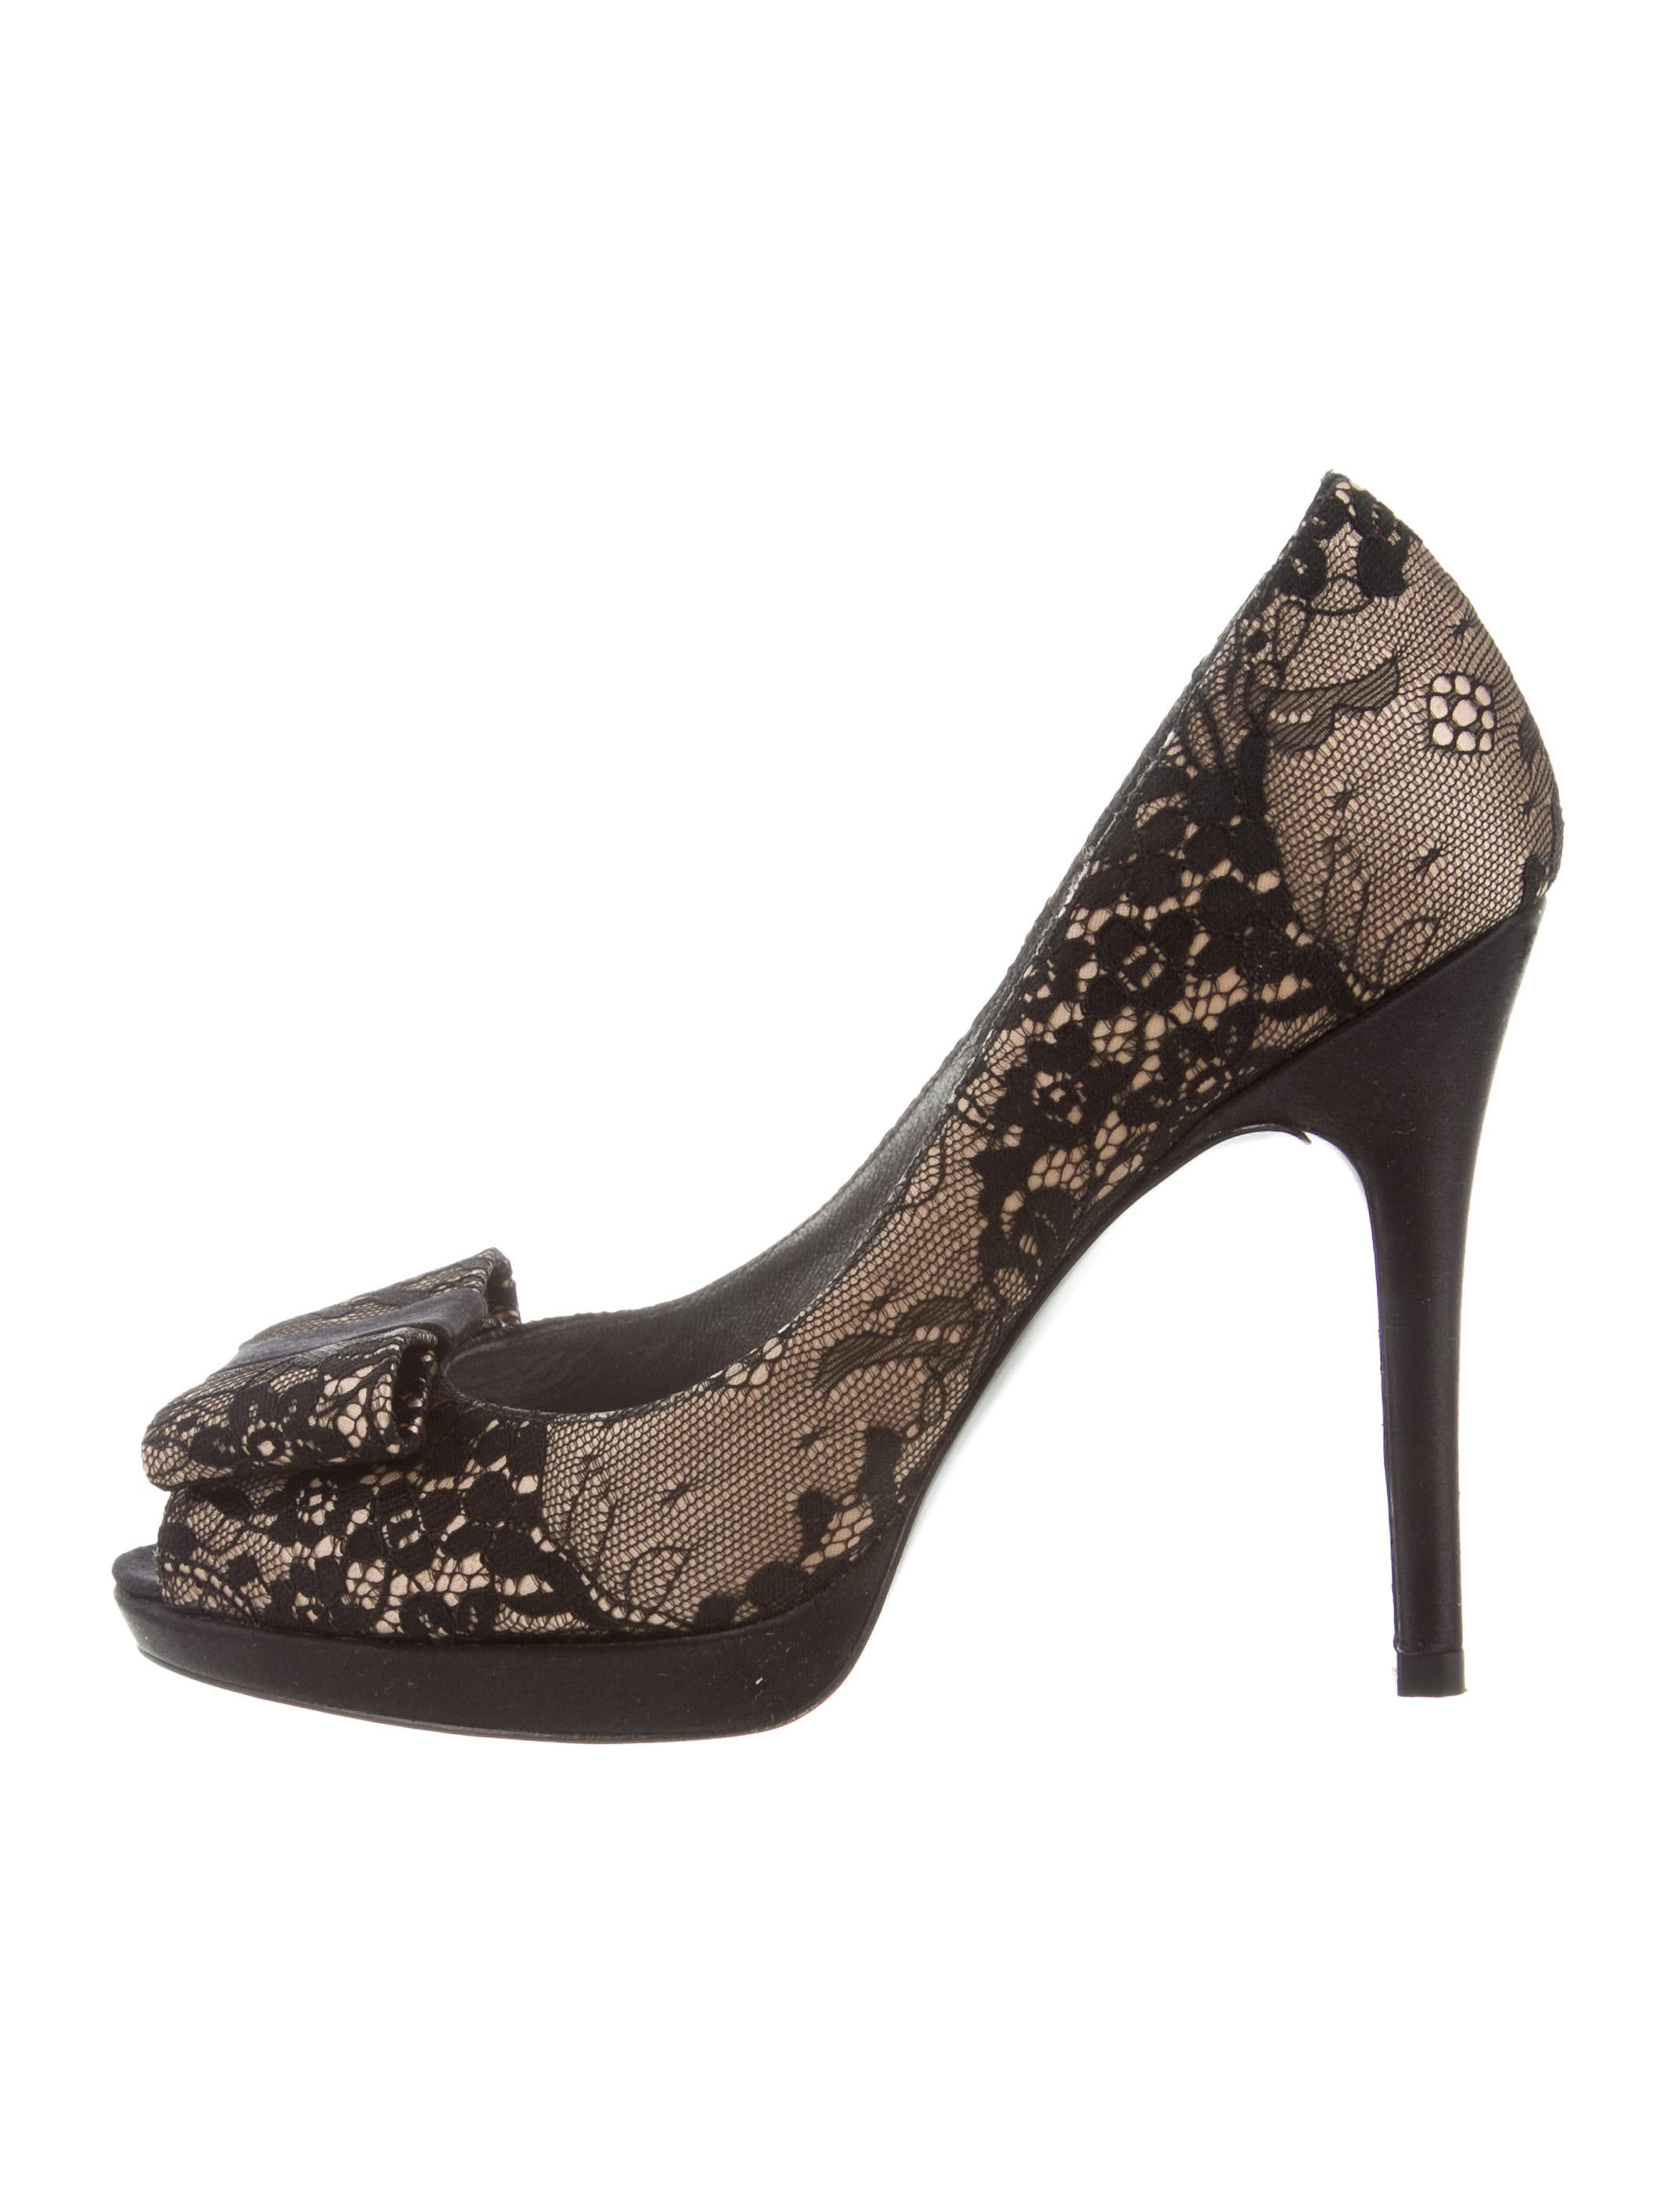 clearance popular countdown package online Stuart Weitzman Evebowright Lace Pumps w/ Tags cheap prices reliable outlet nicekicks clearance store sale online JT8Bf4VdRI